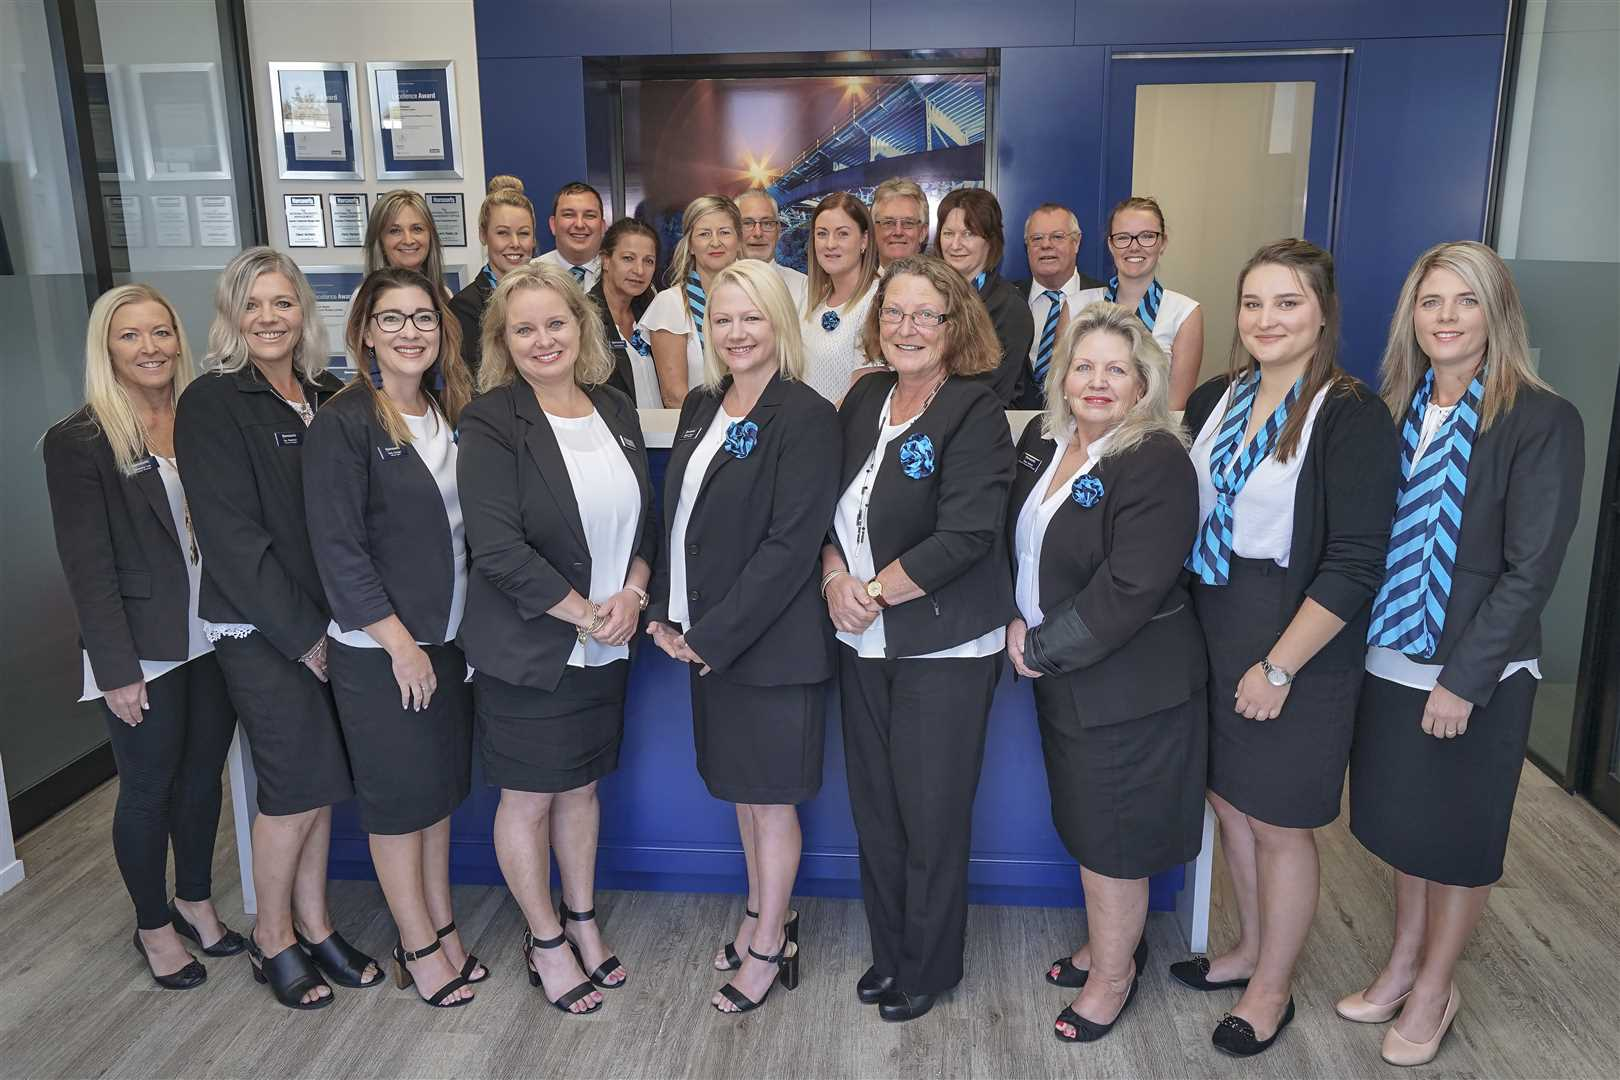 2 Harcourts Hamilton Body Corporate Management, Frankton